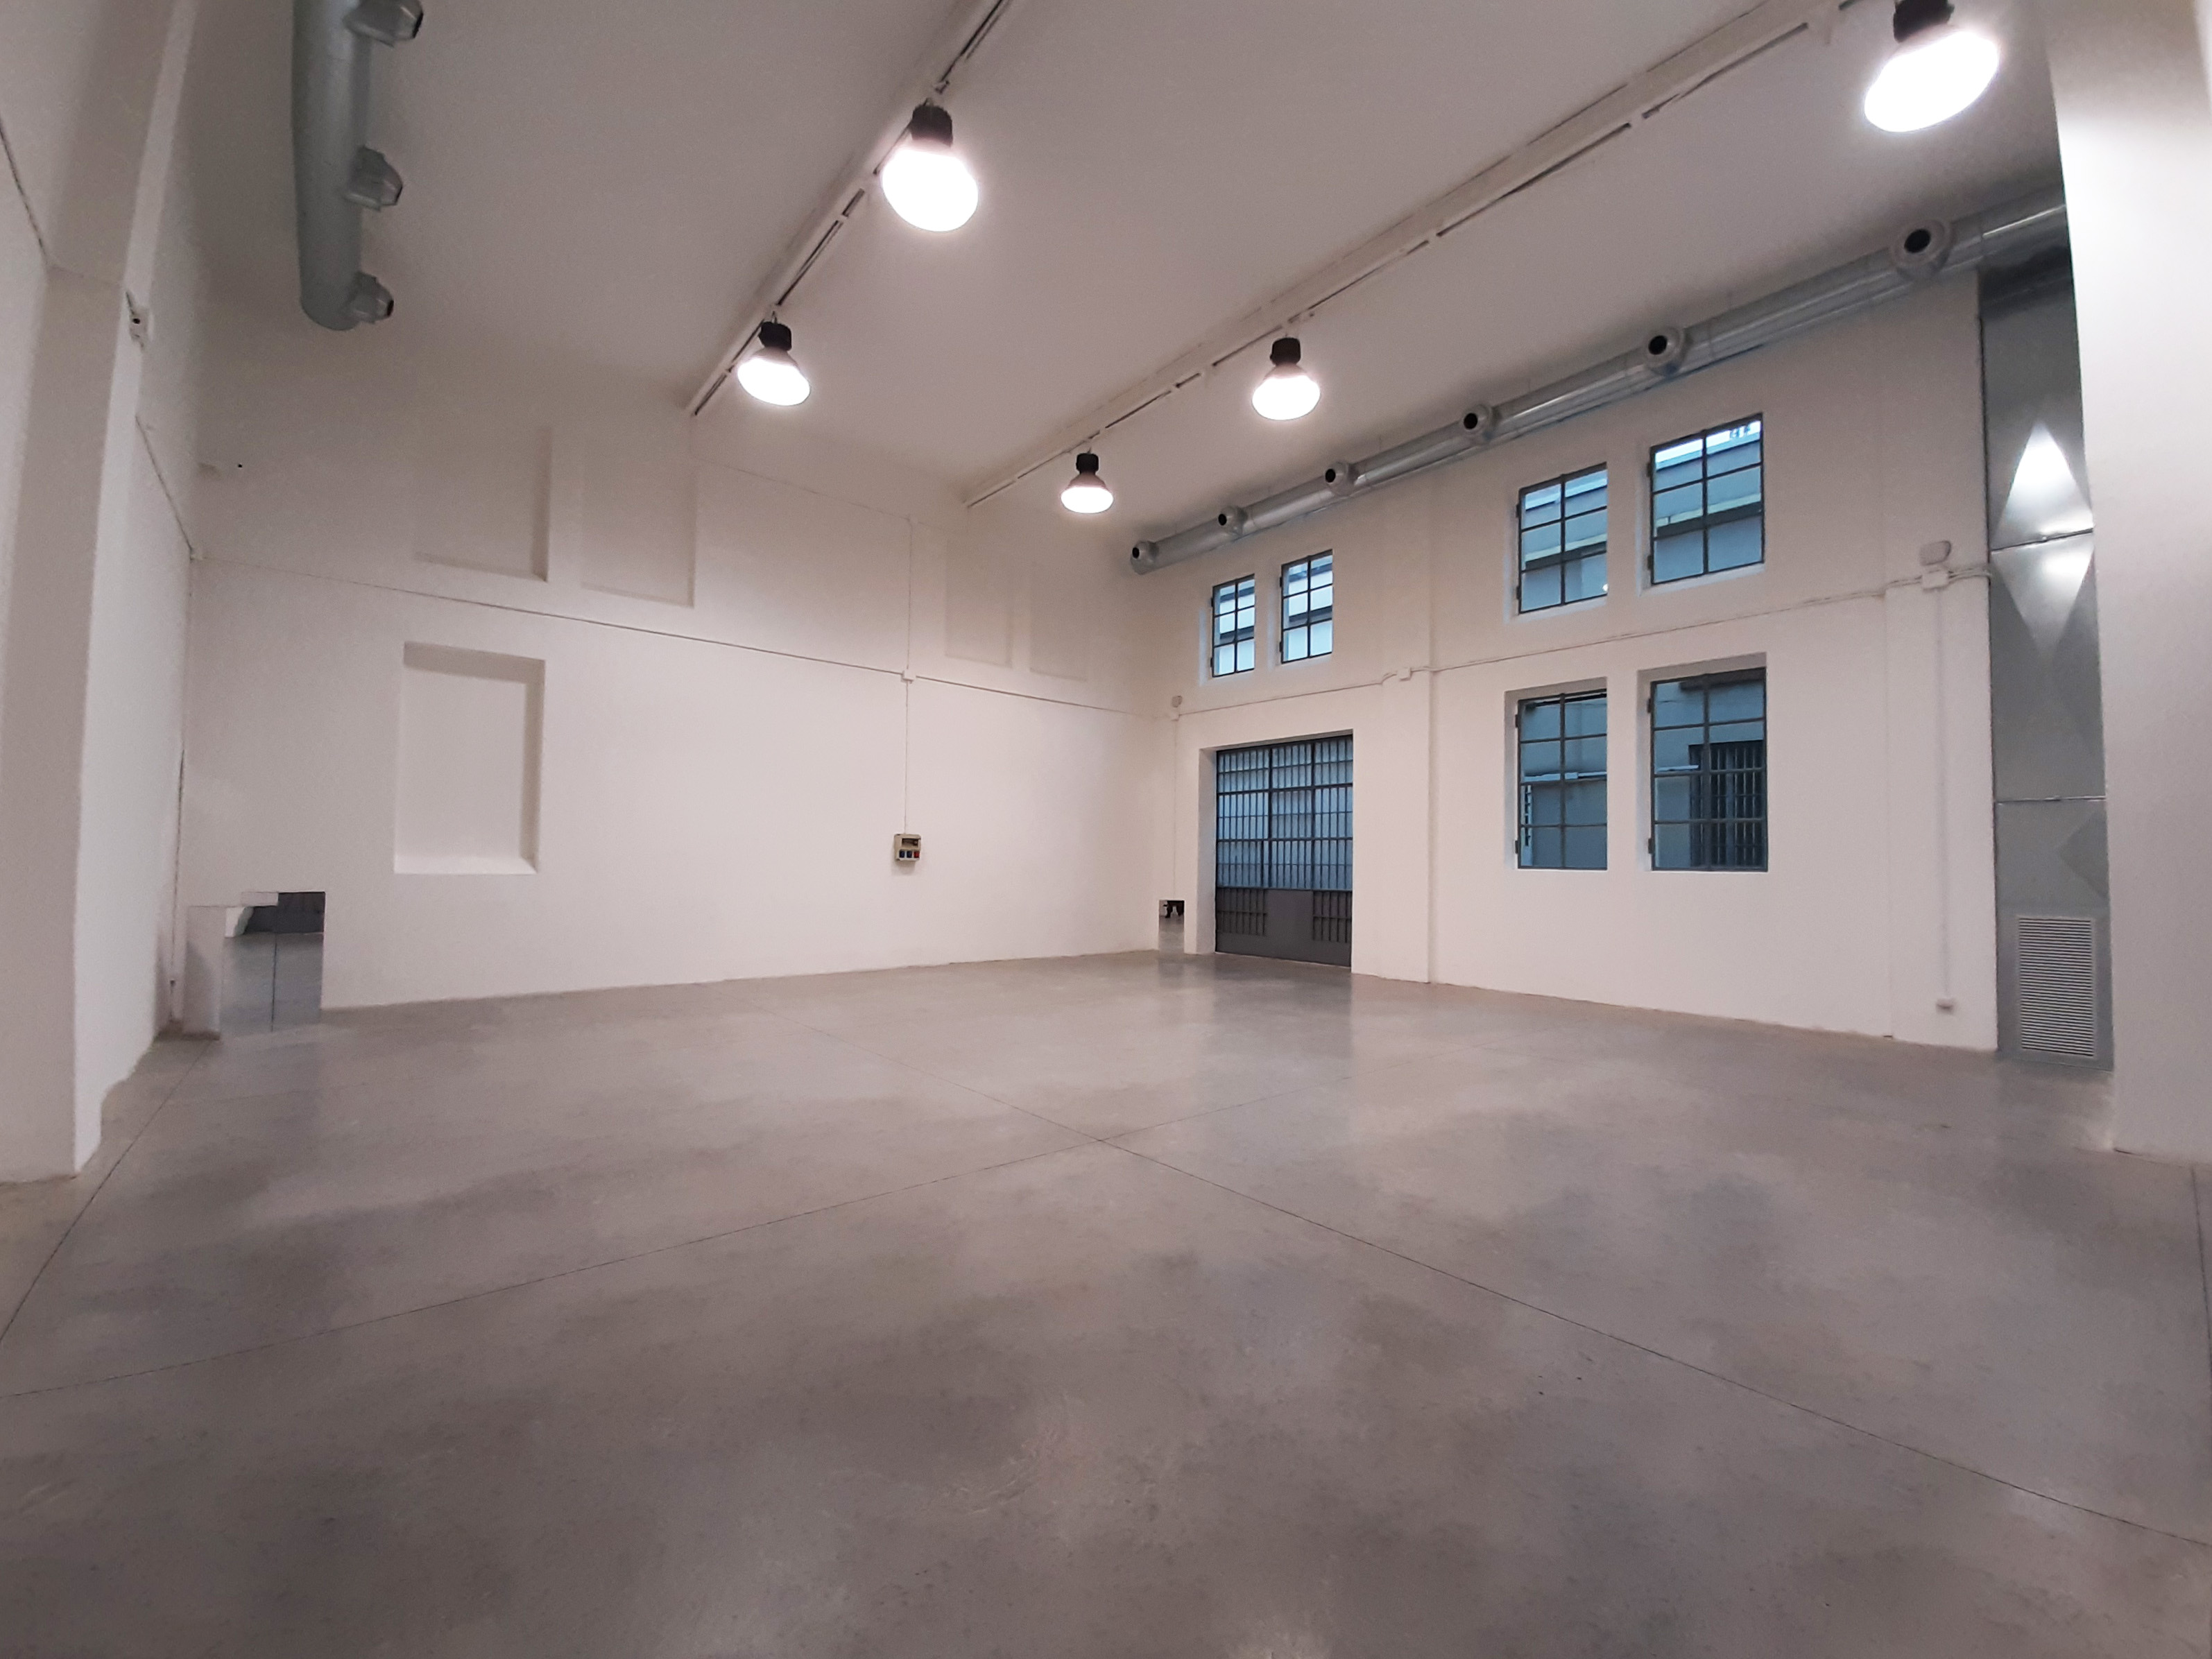 Opificio 31-Officina 31 - Open space, Spazio industriale di 180mq in Via Tortona 31 | location disallestita 2